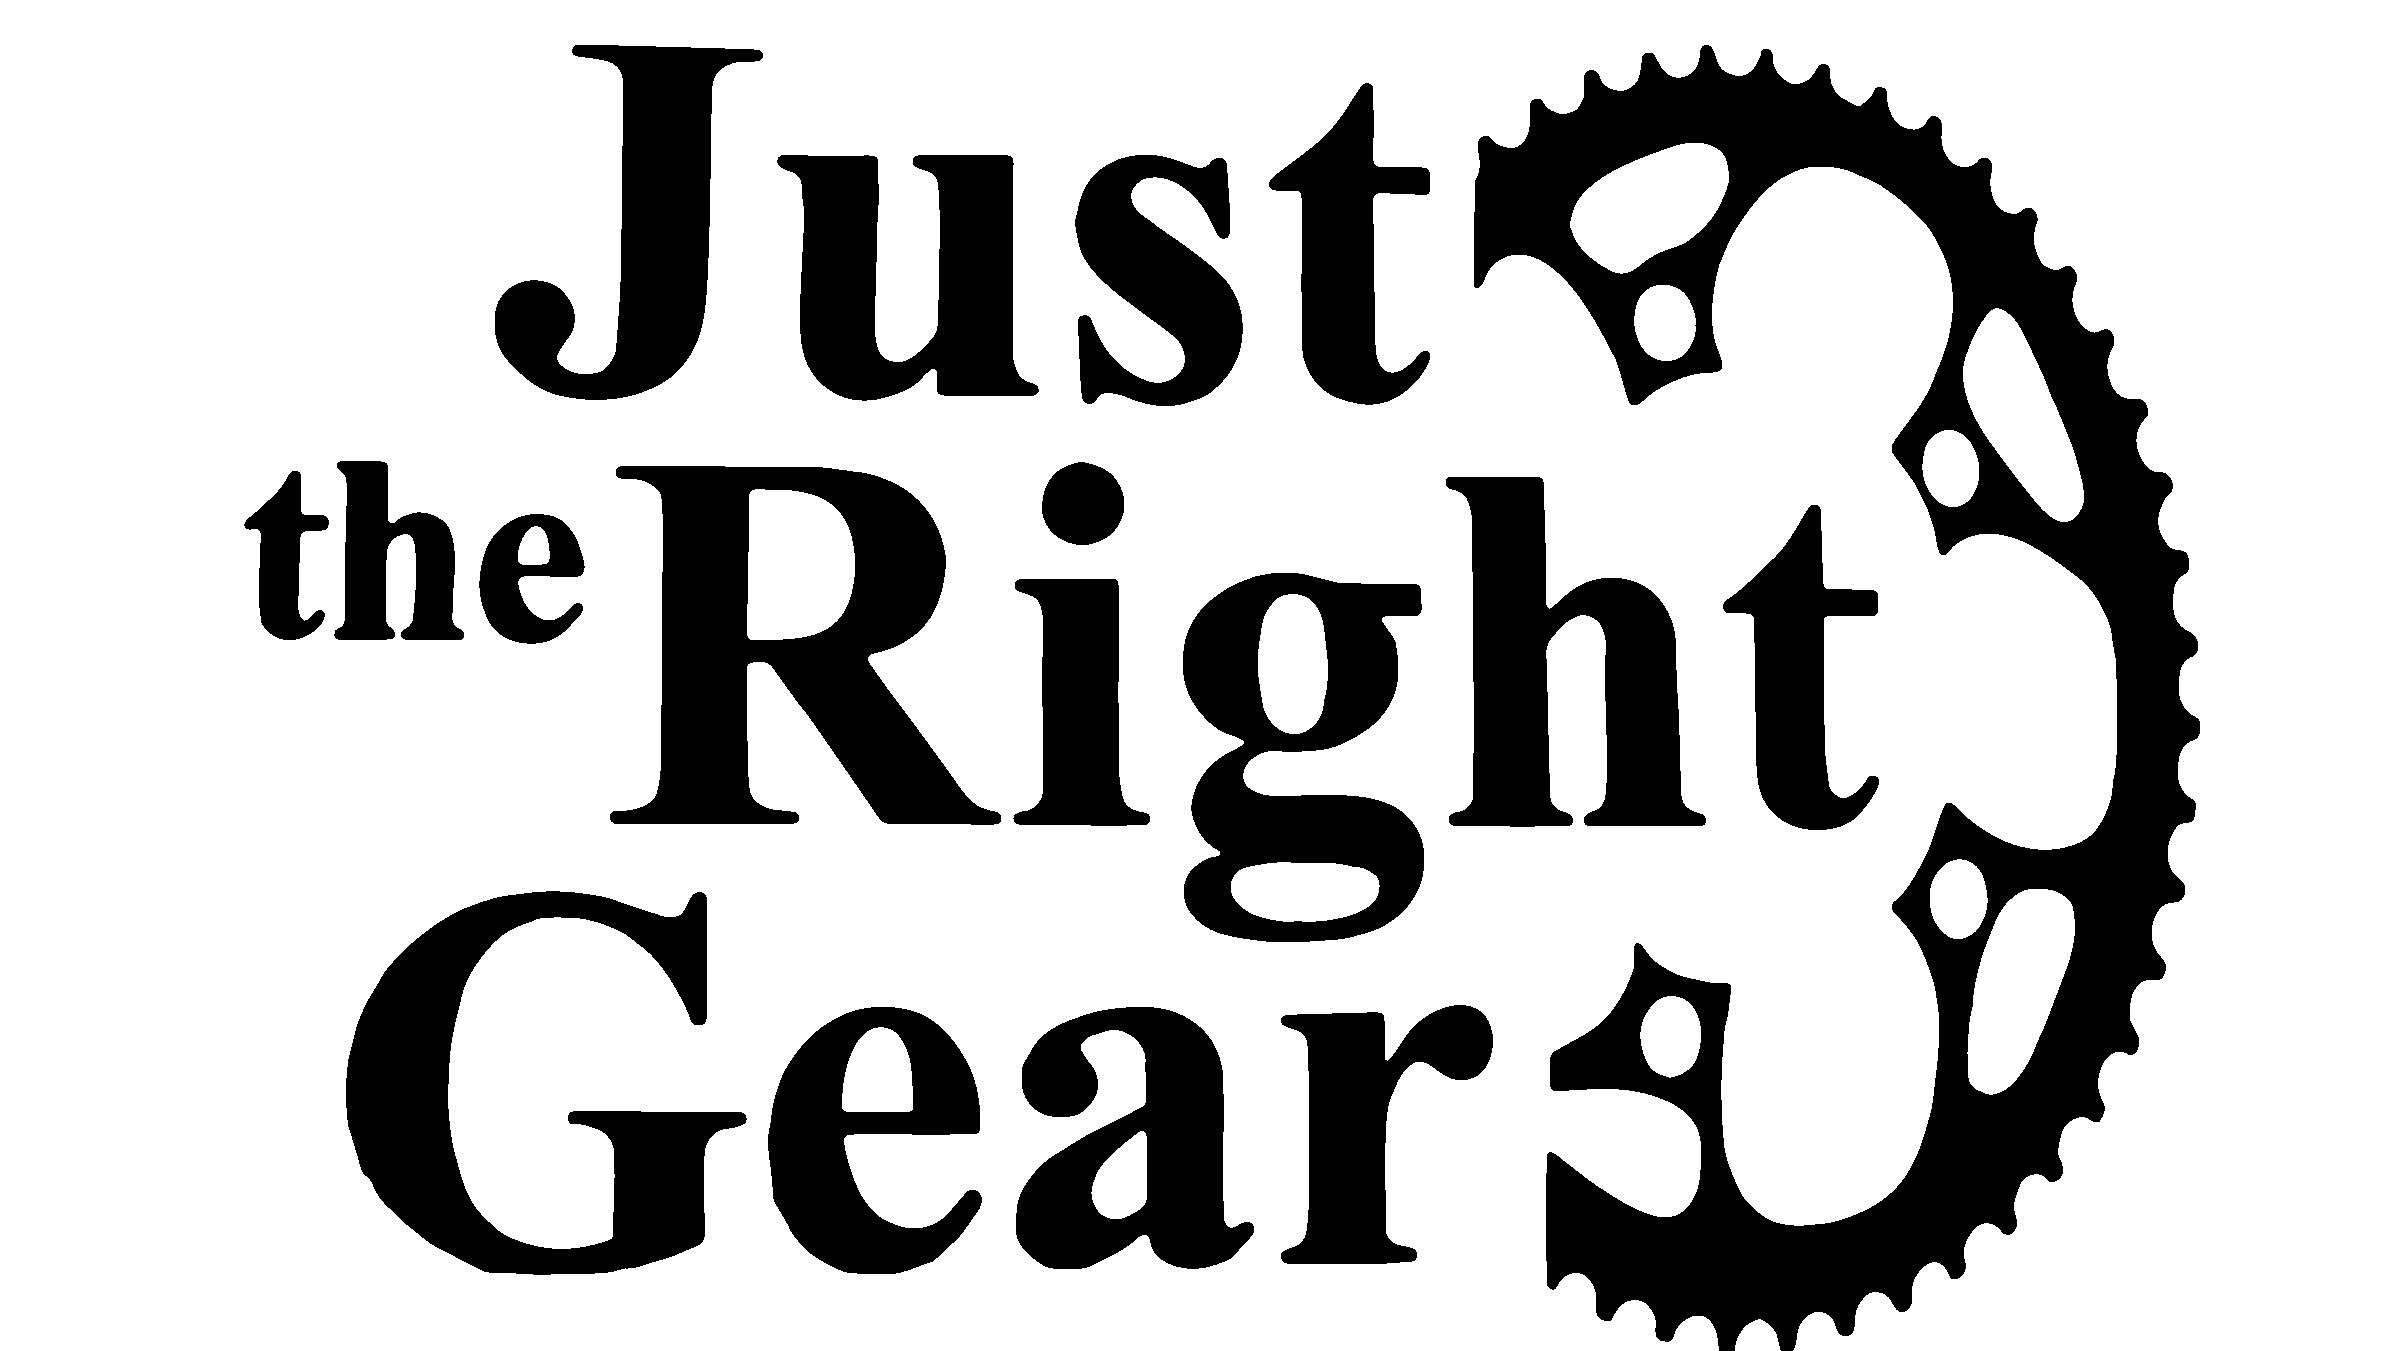 Just the Right Gear VECTOR LOGO (dragged) 1.jpg